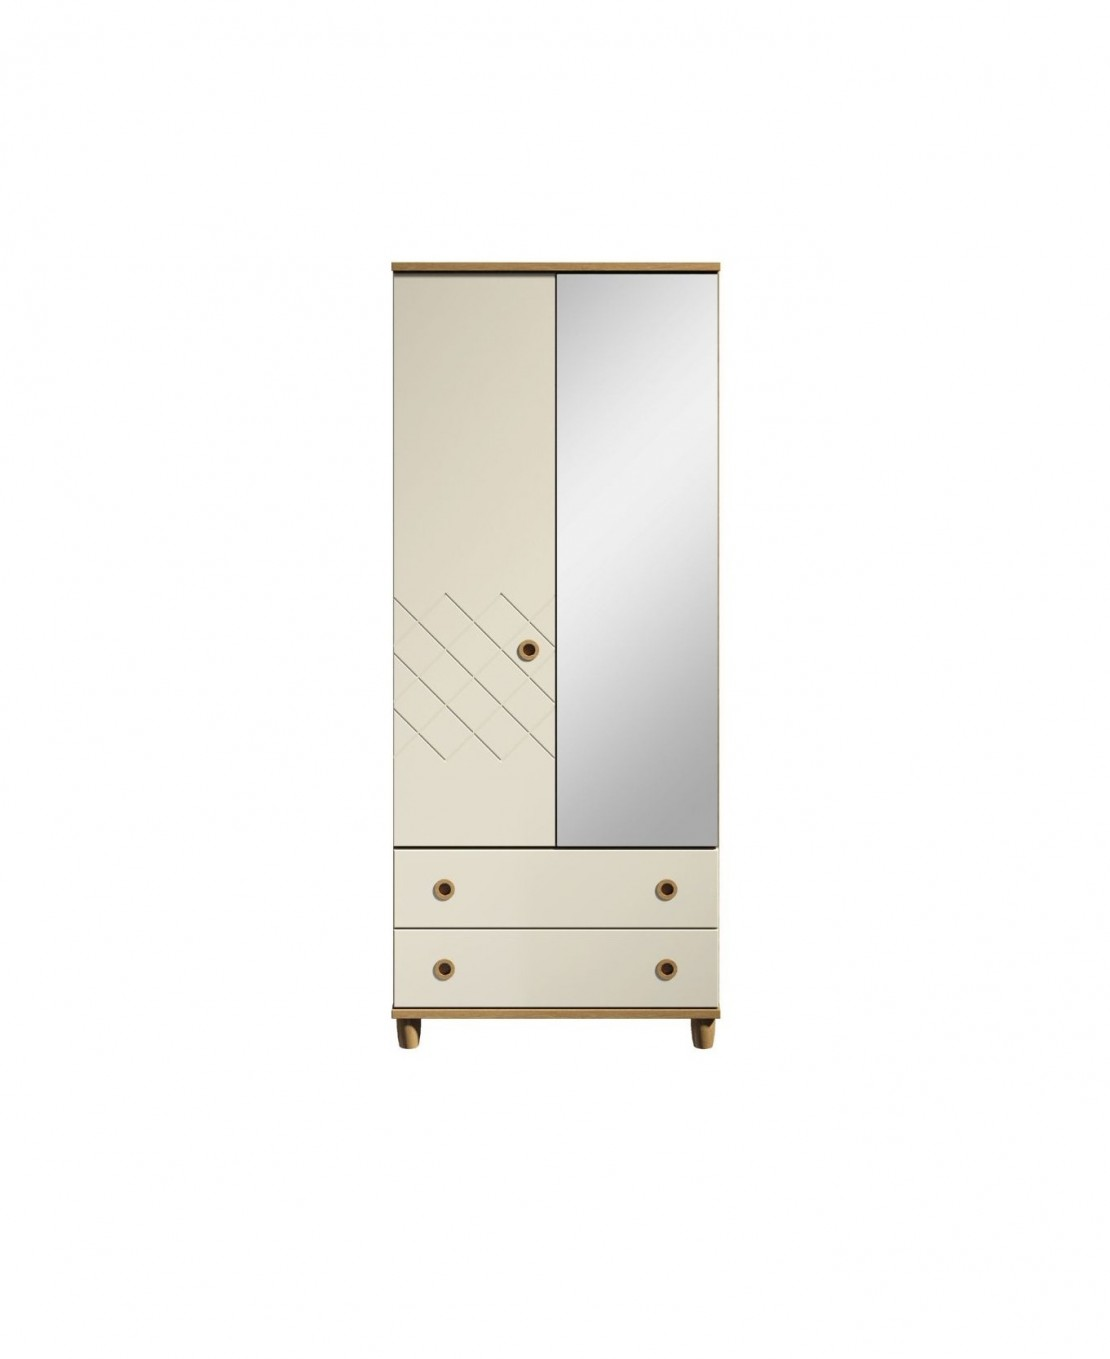 /_images/product-photos/kt-furniture-geo-2-door-mirrored-gents-robe-matt-alabaster-with-oak-carcase-a.jpg